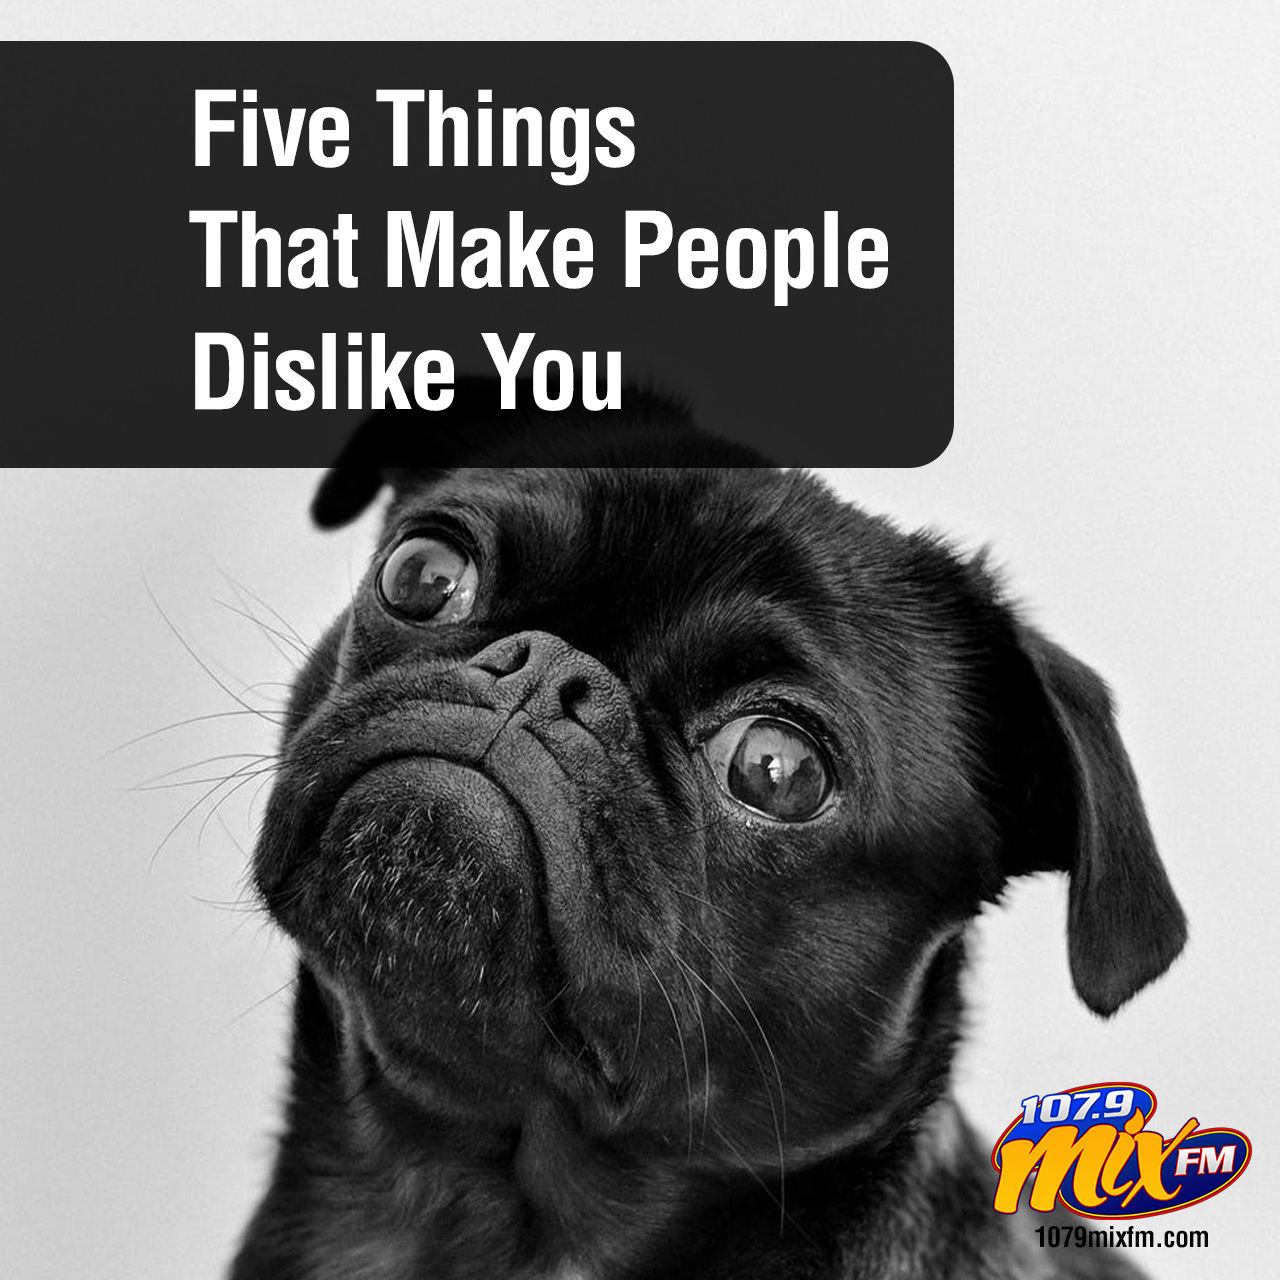 Five Things That Make People Dislike You